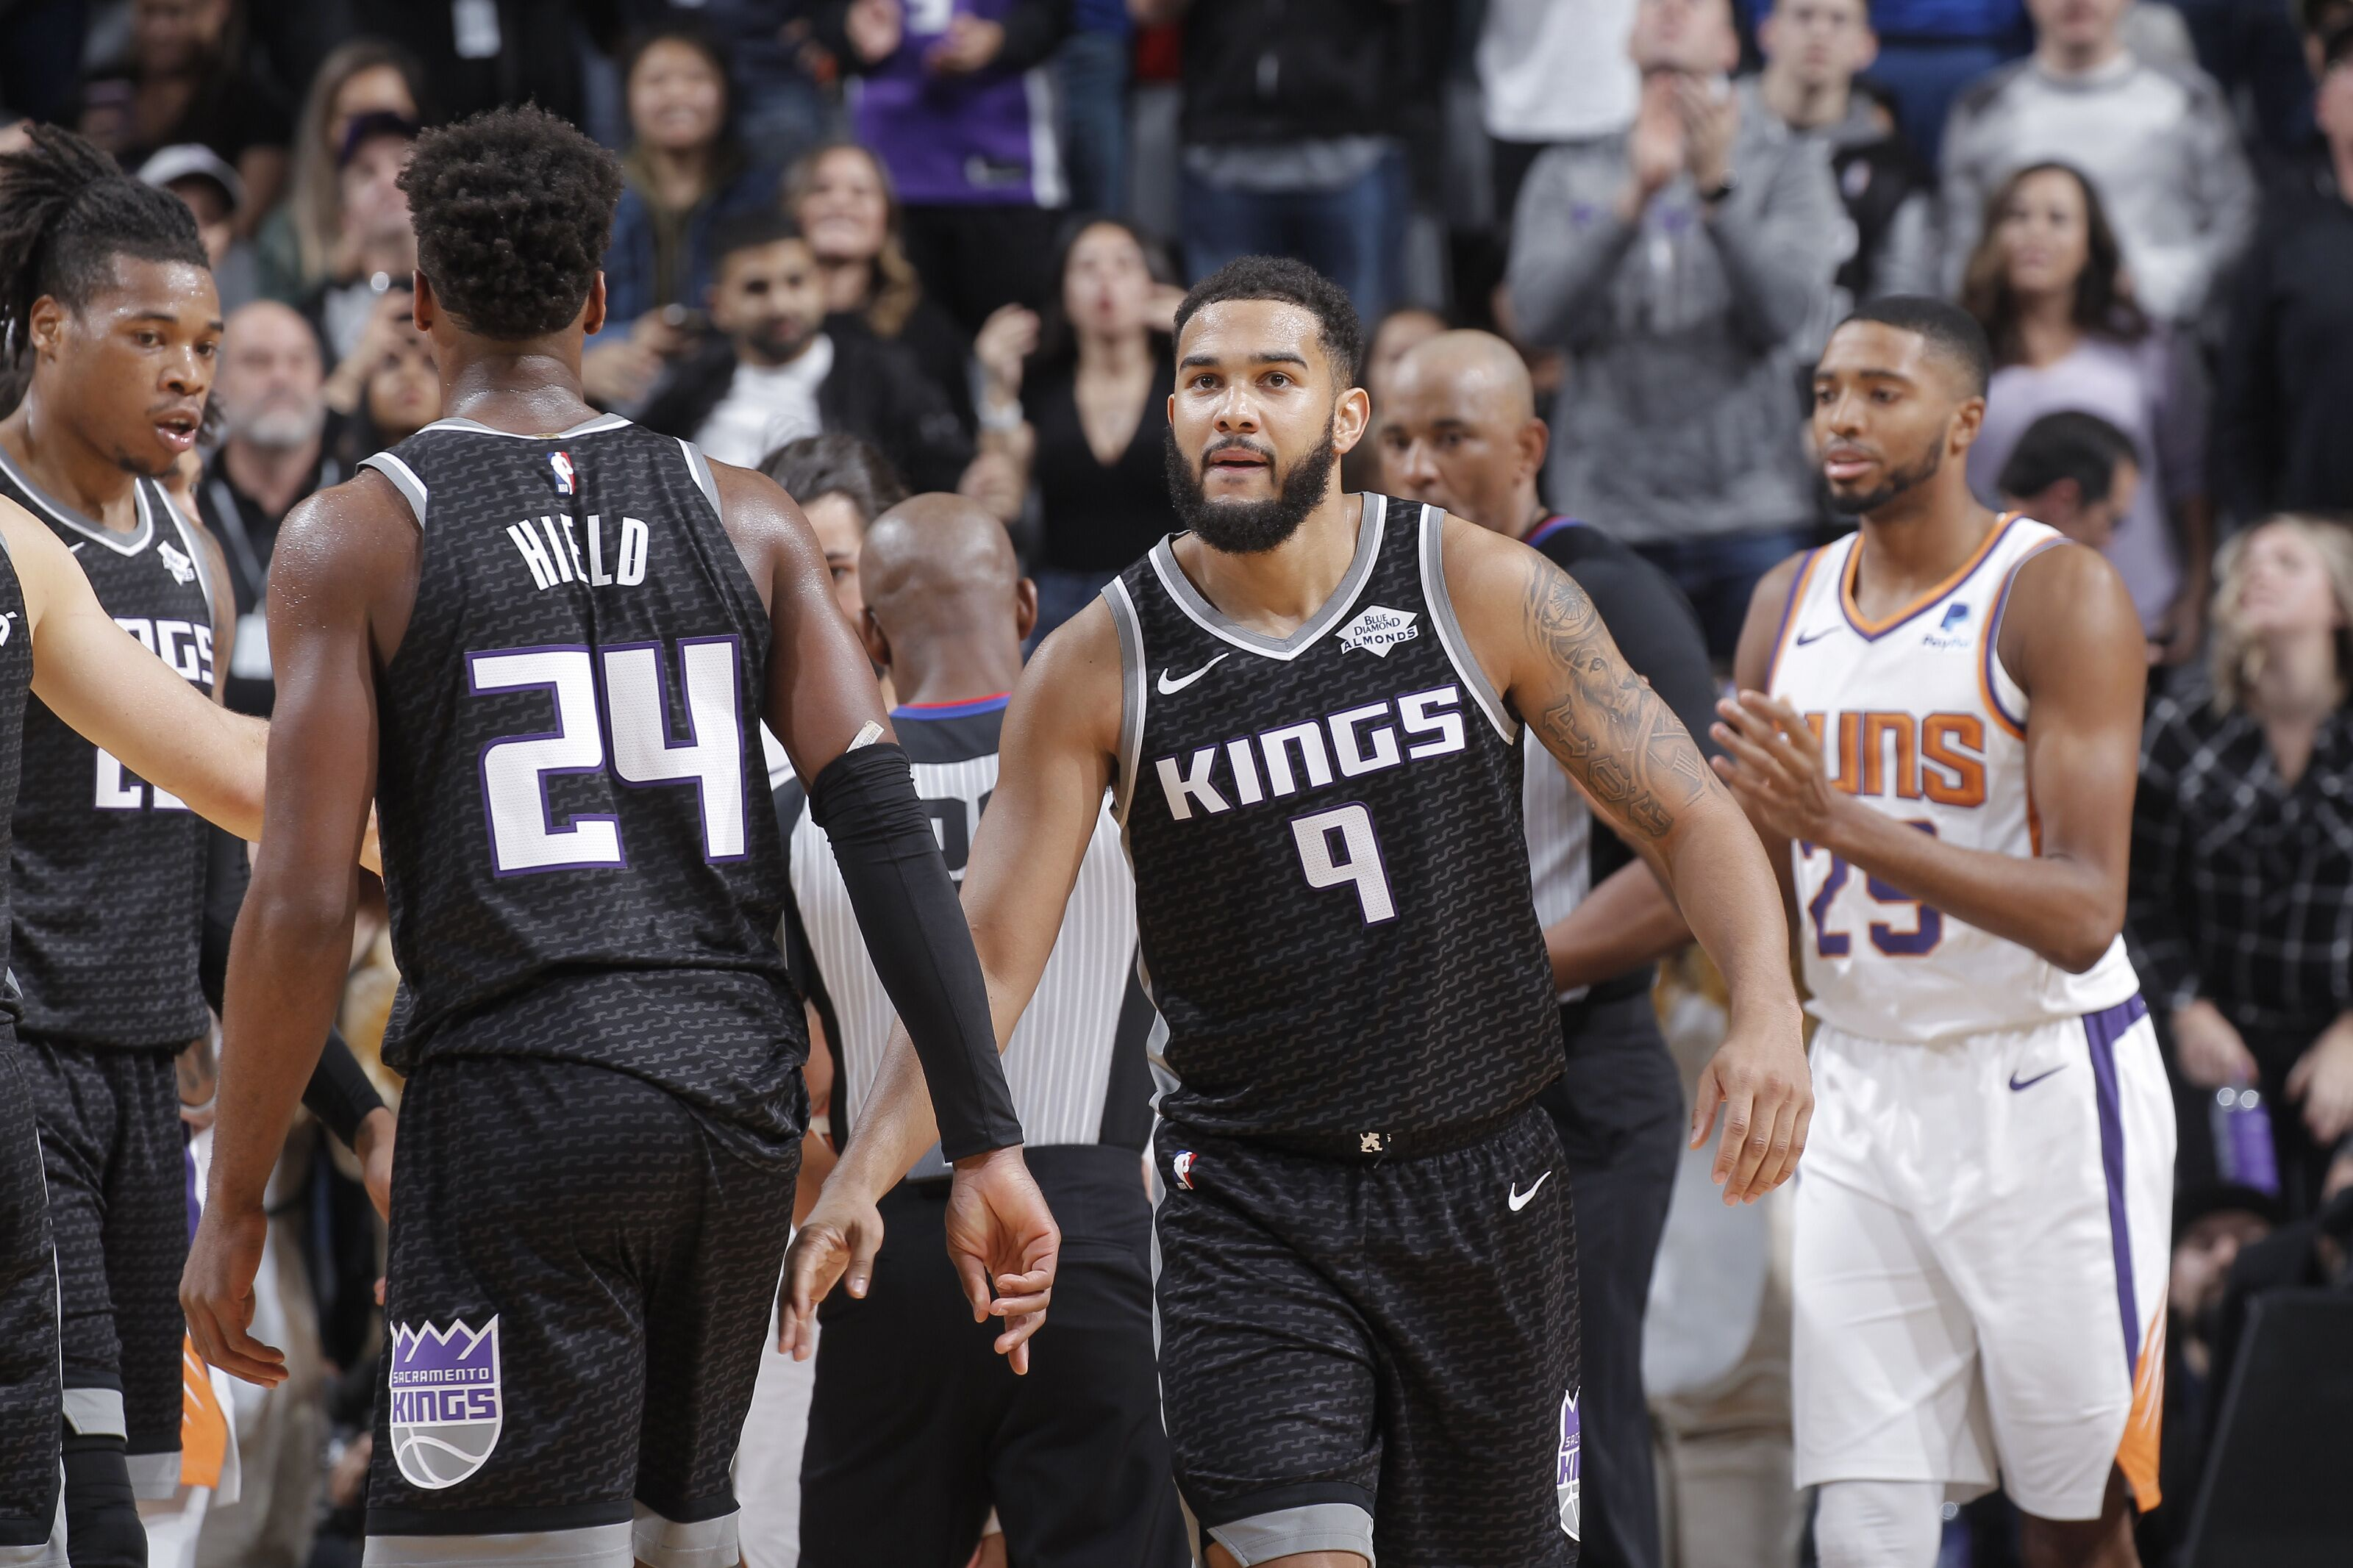 Kings vs. Suns Preview: The Harry Giles Game